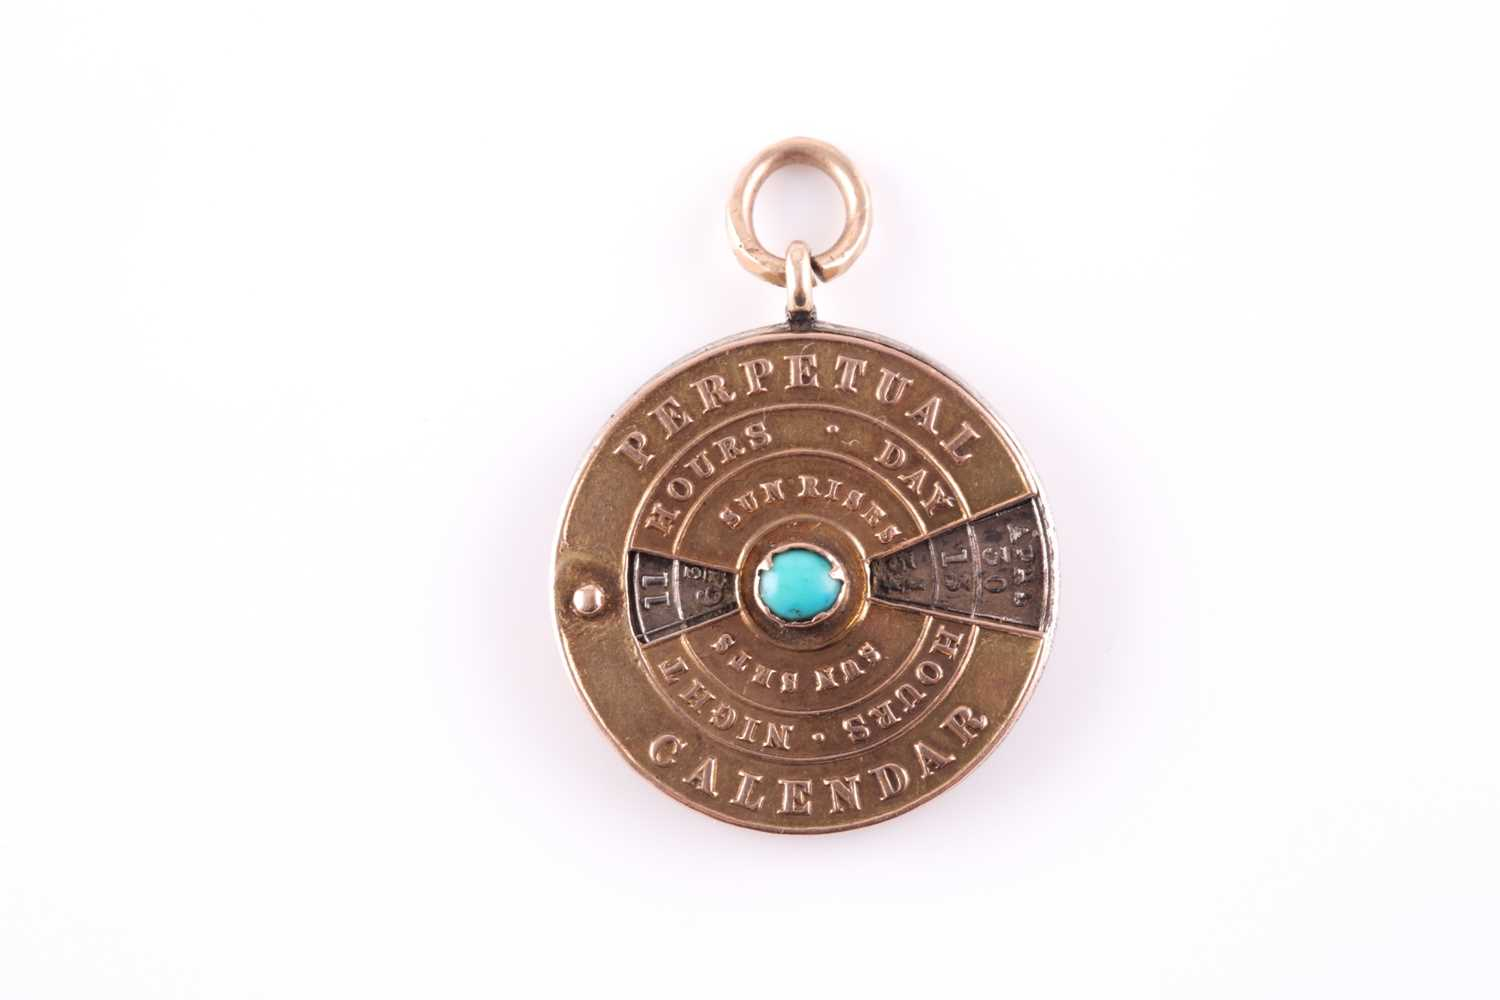 A 19th century yellow metal perpetual calendar pendant, with white metal central disk, featuring